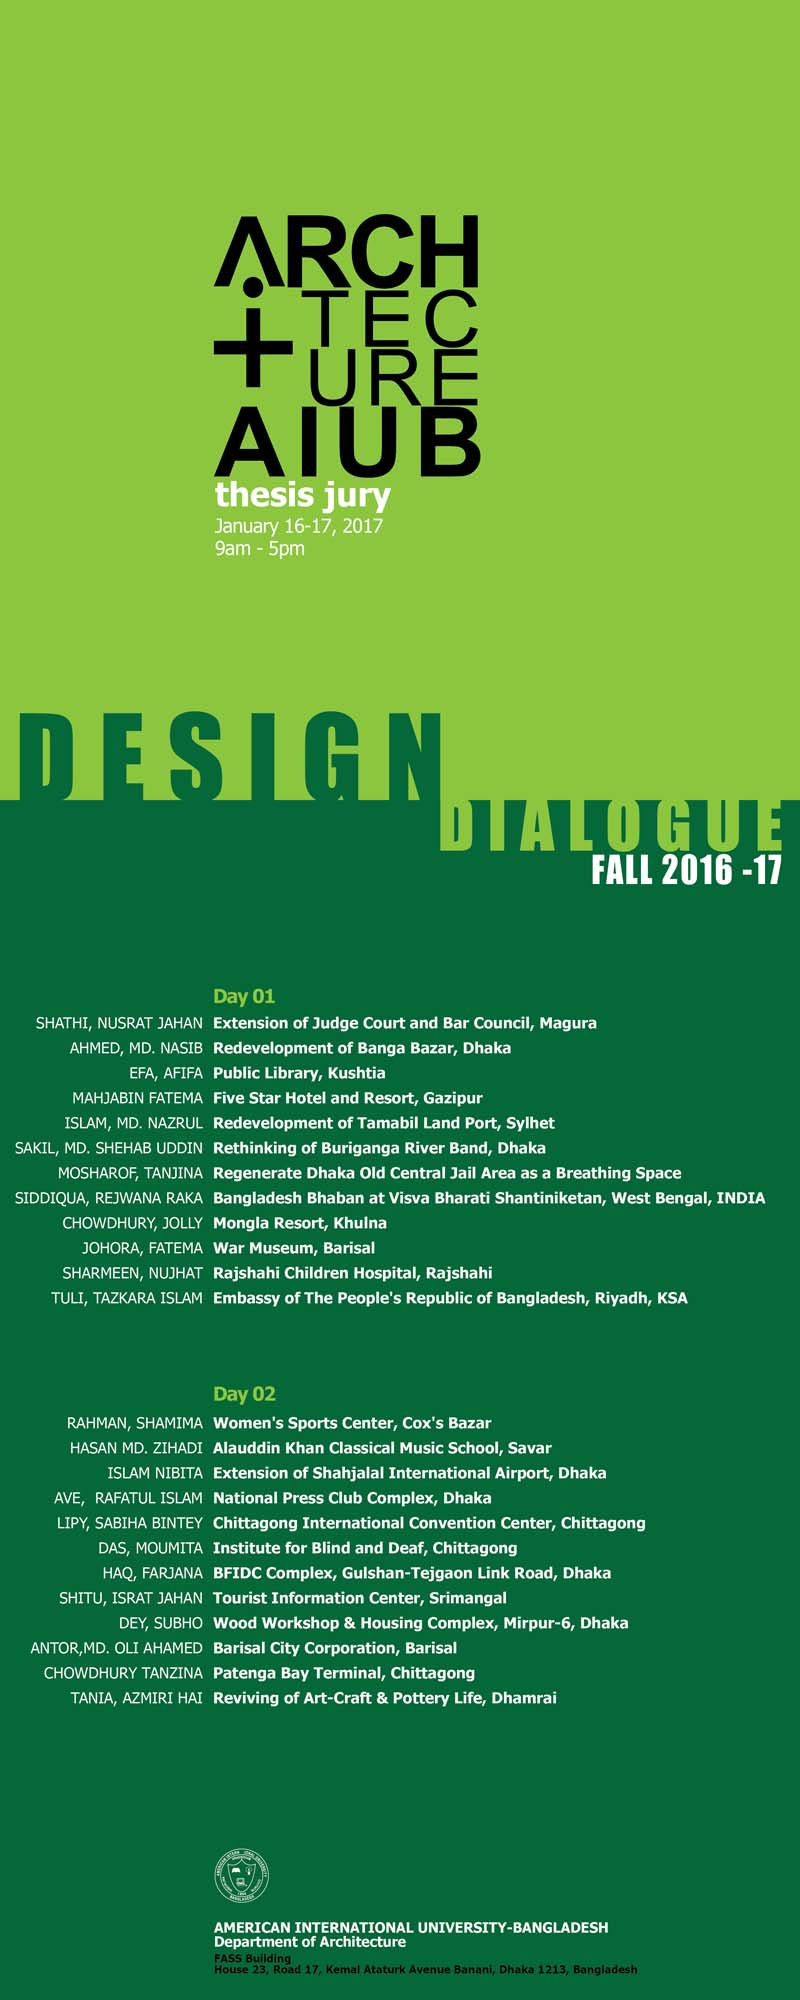 DESIGN DIALOGUE _ Fall 16-17 © Department of Architecture, AIUB